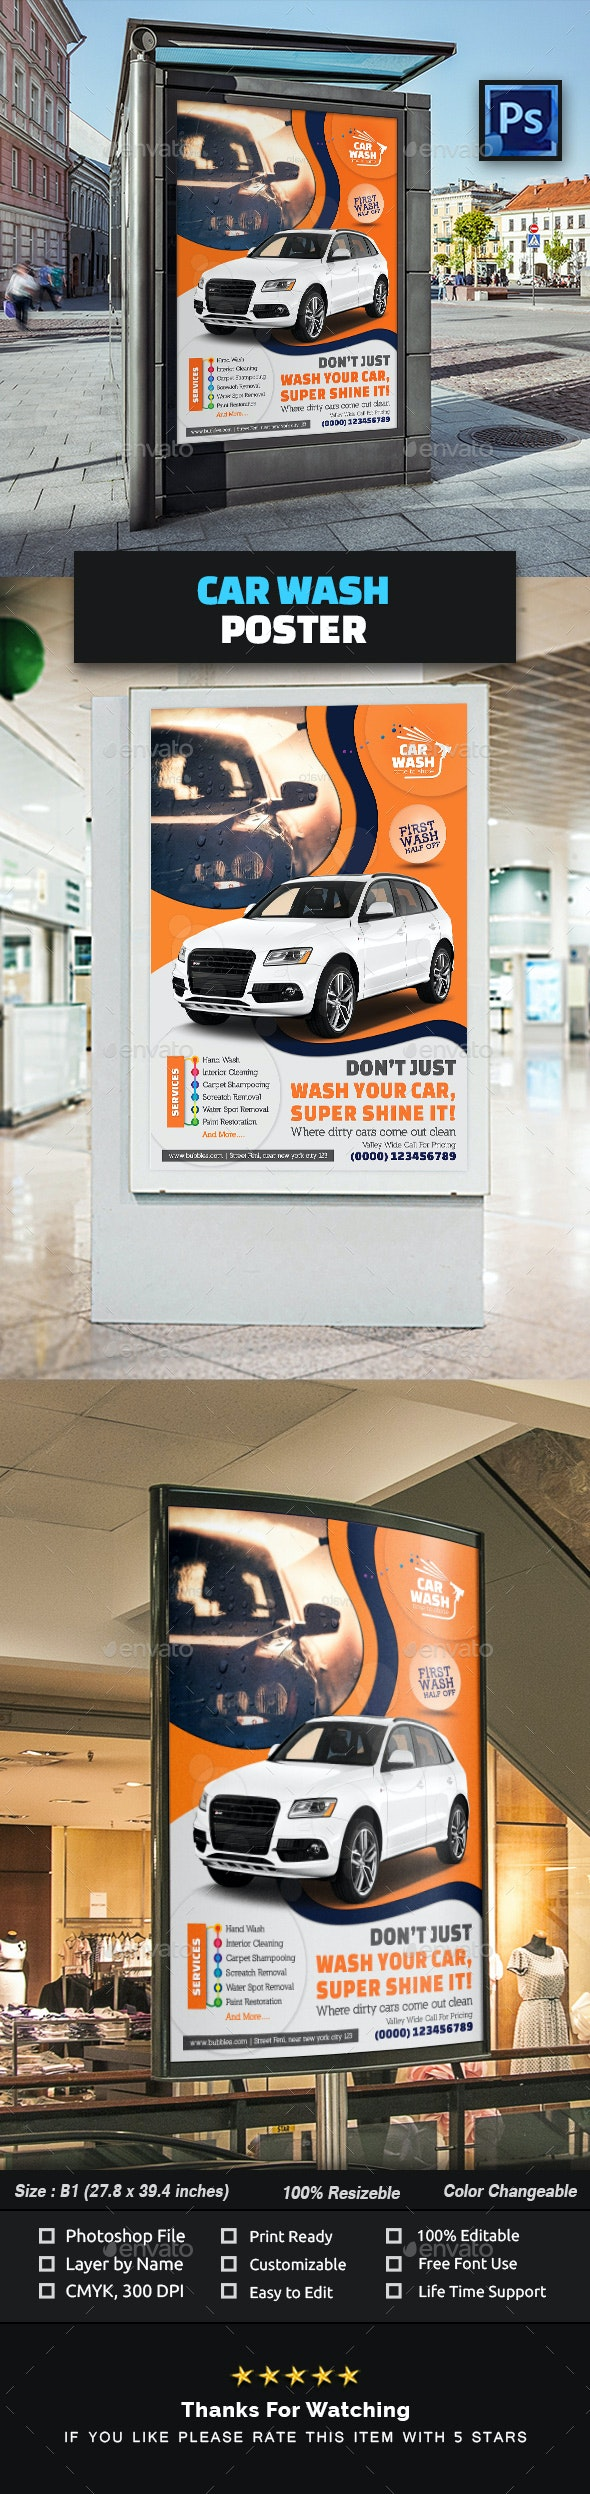 Car Wash Poster Template - Signage Print Templates